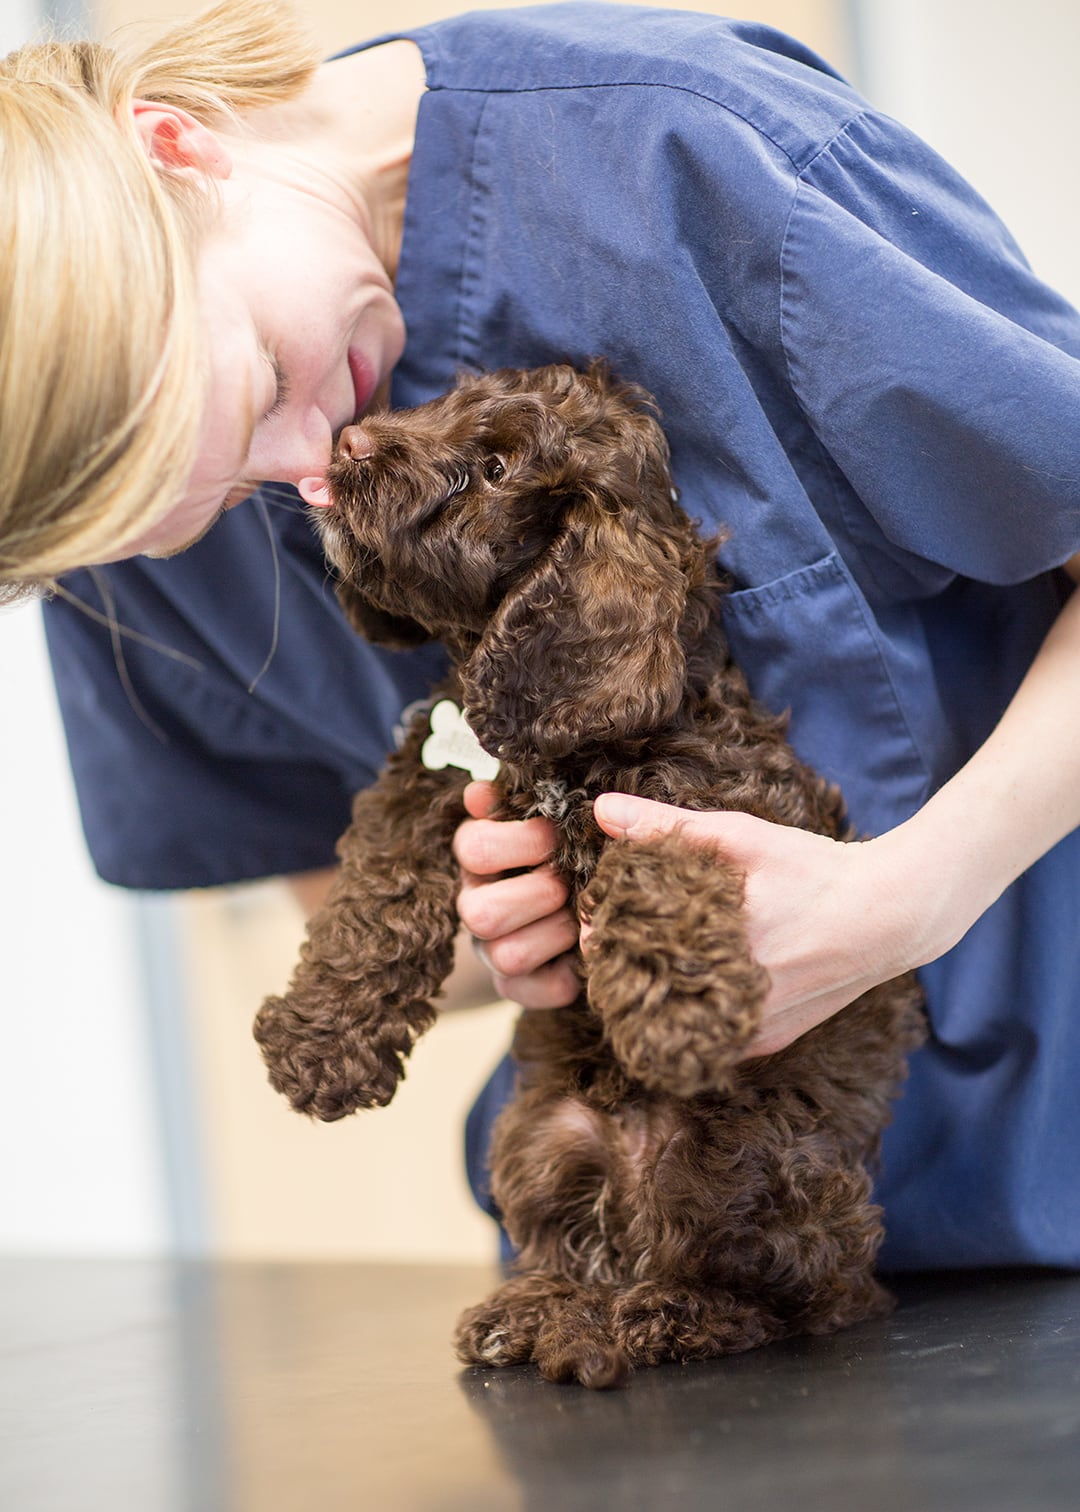 Vet with a cockerpoo puppy at Ashtree Vets surgery i Newmarket during a commercial photoshoot